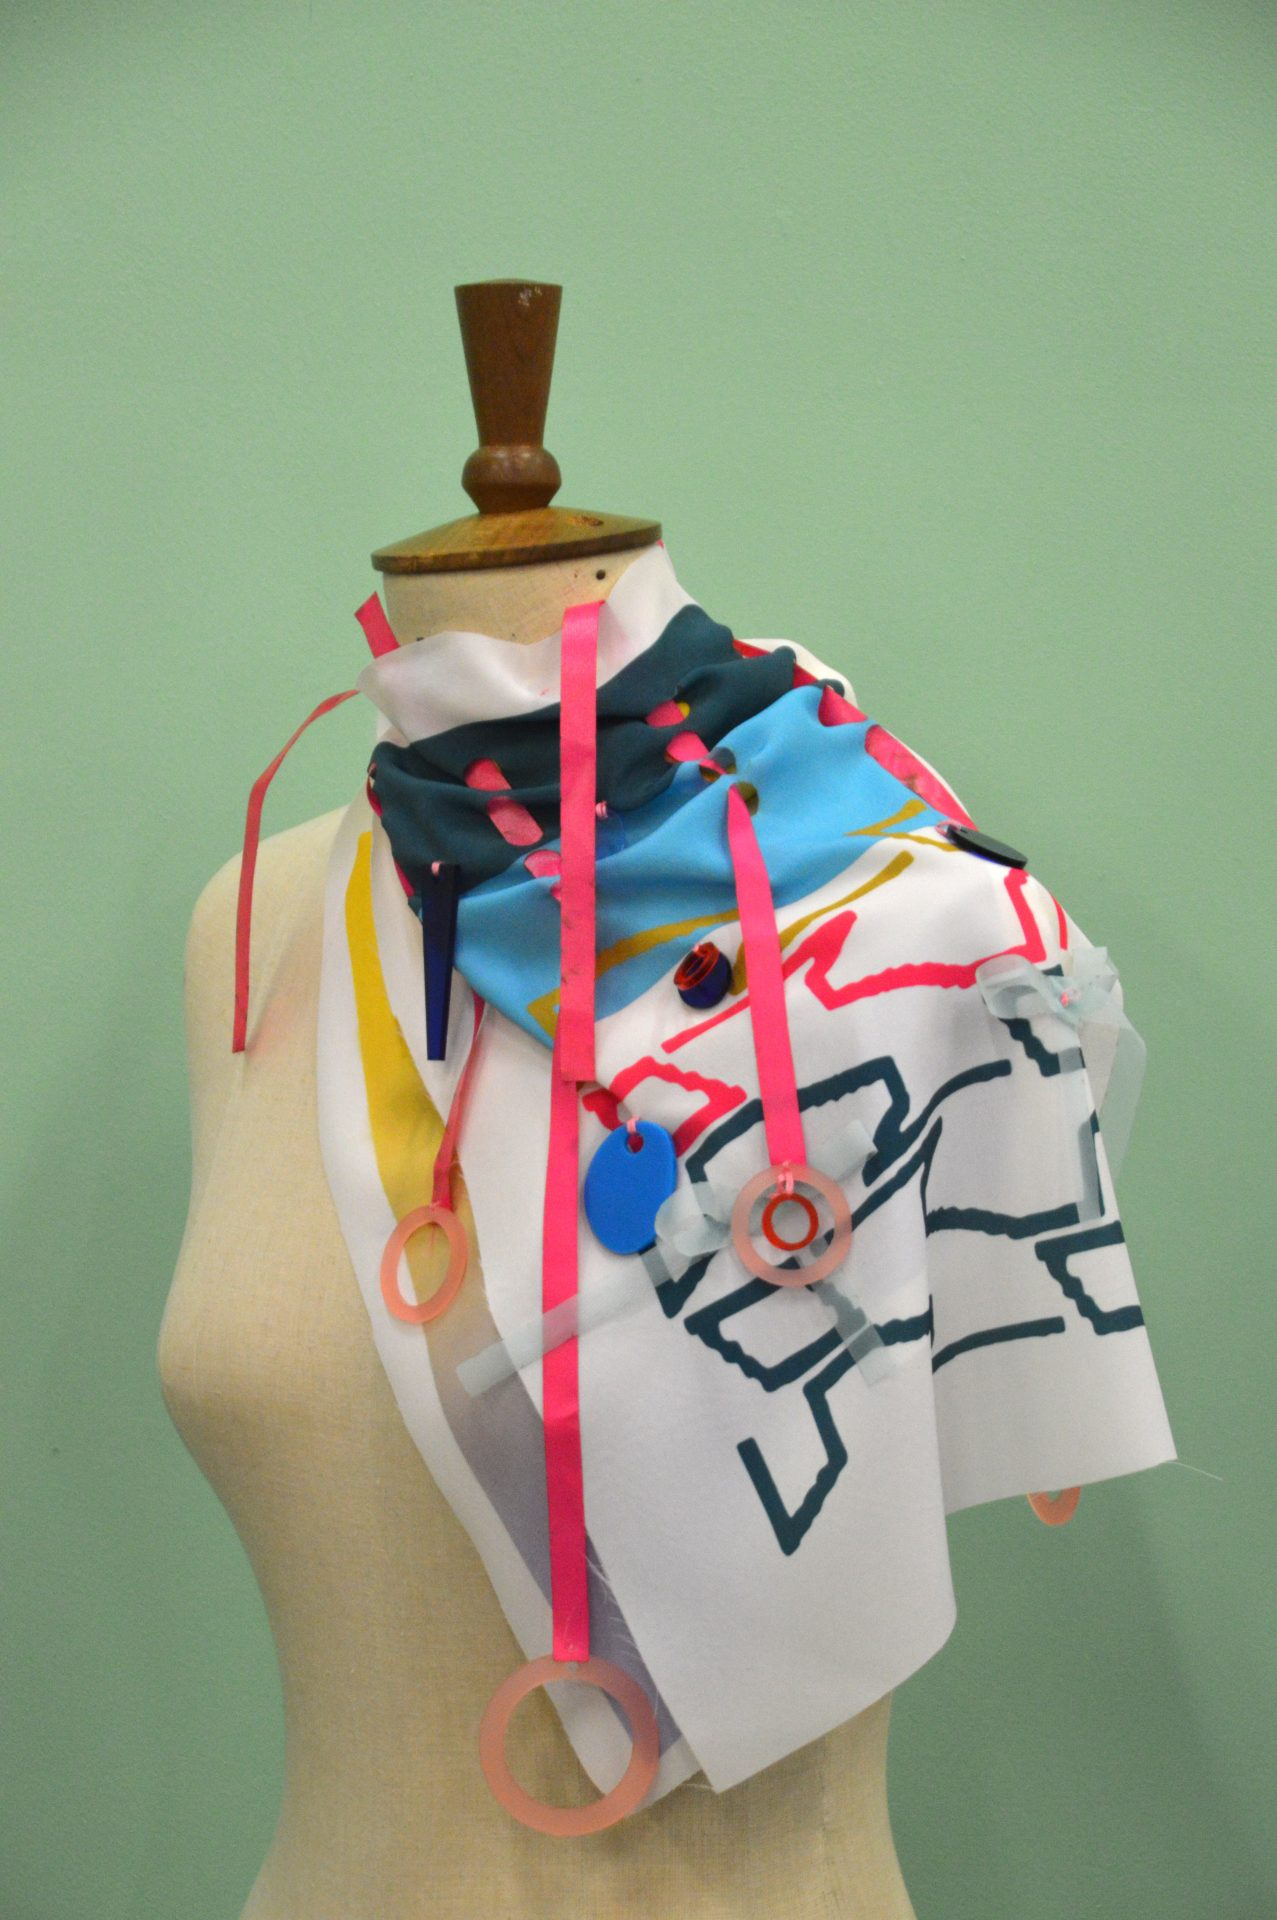 Textile piece made in a masterclass.